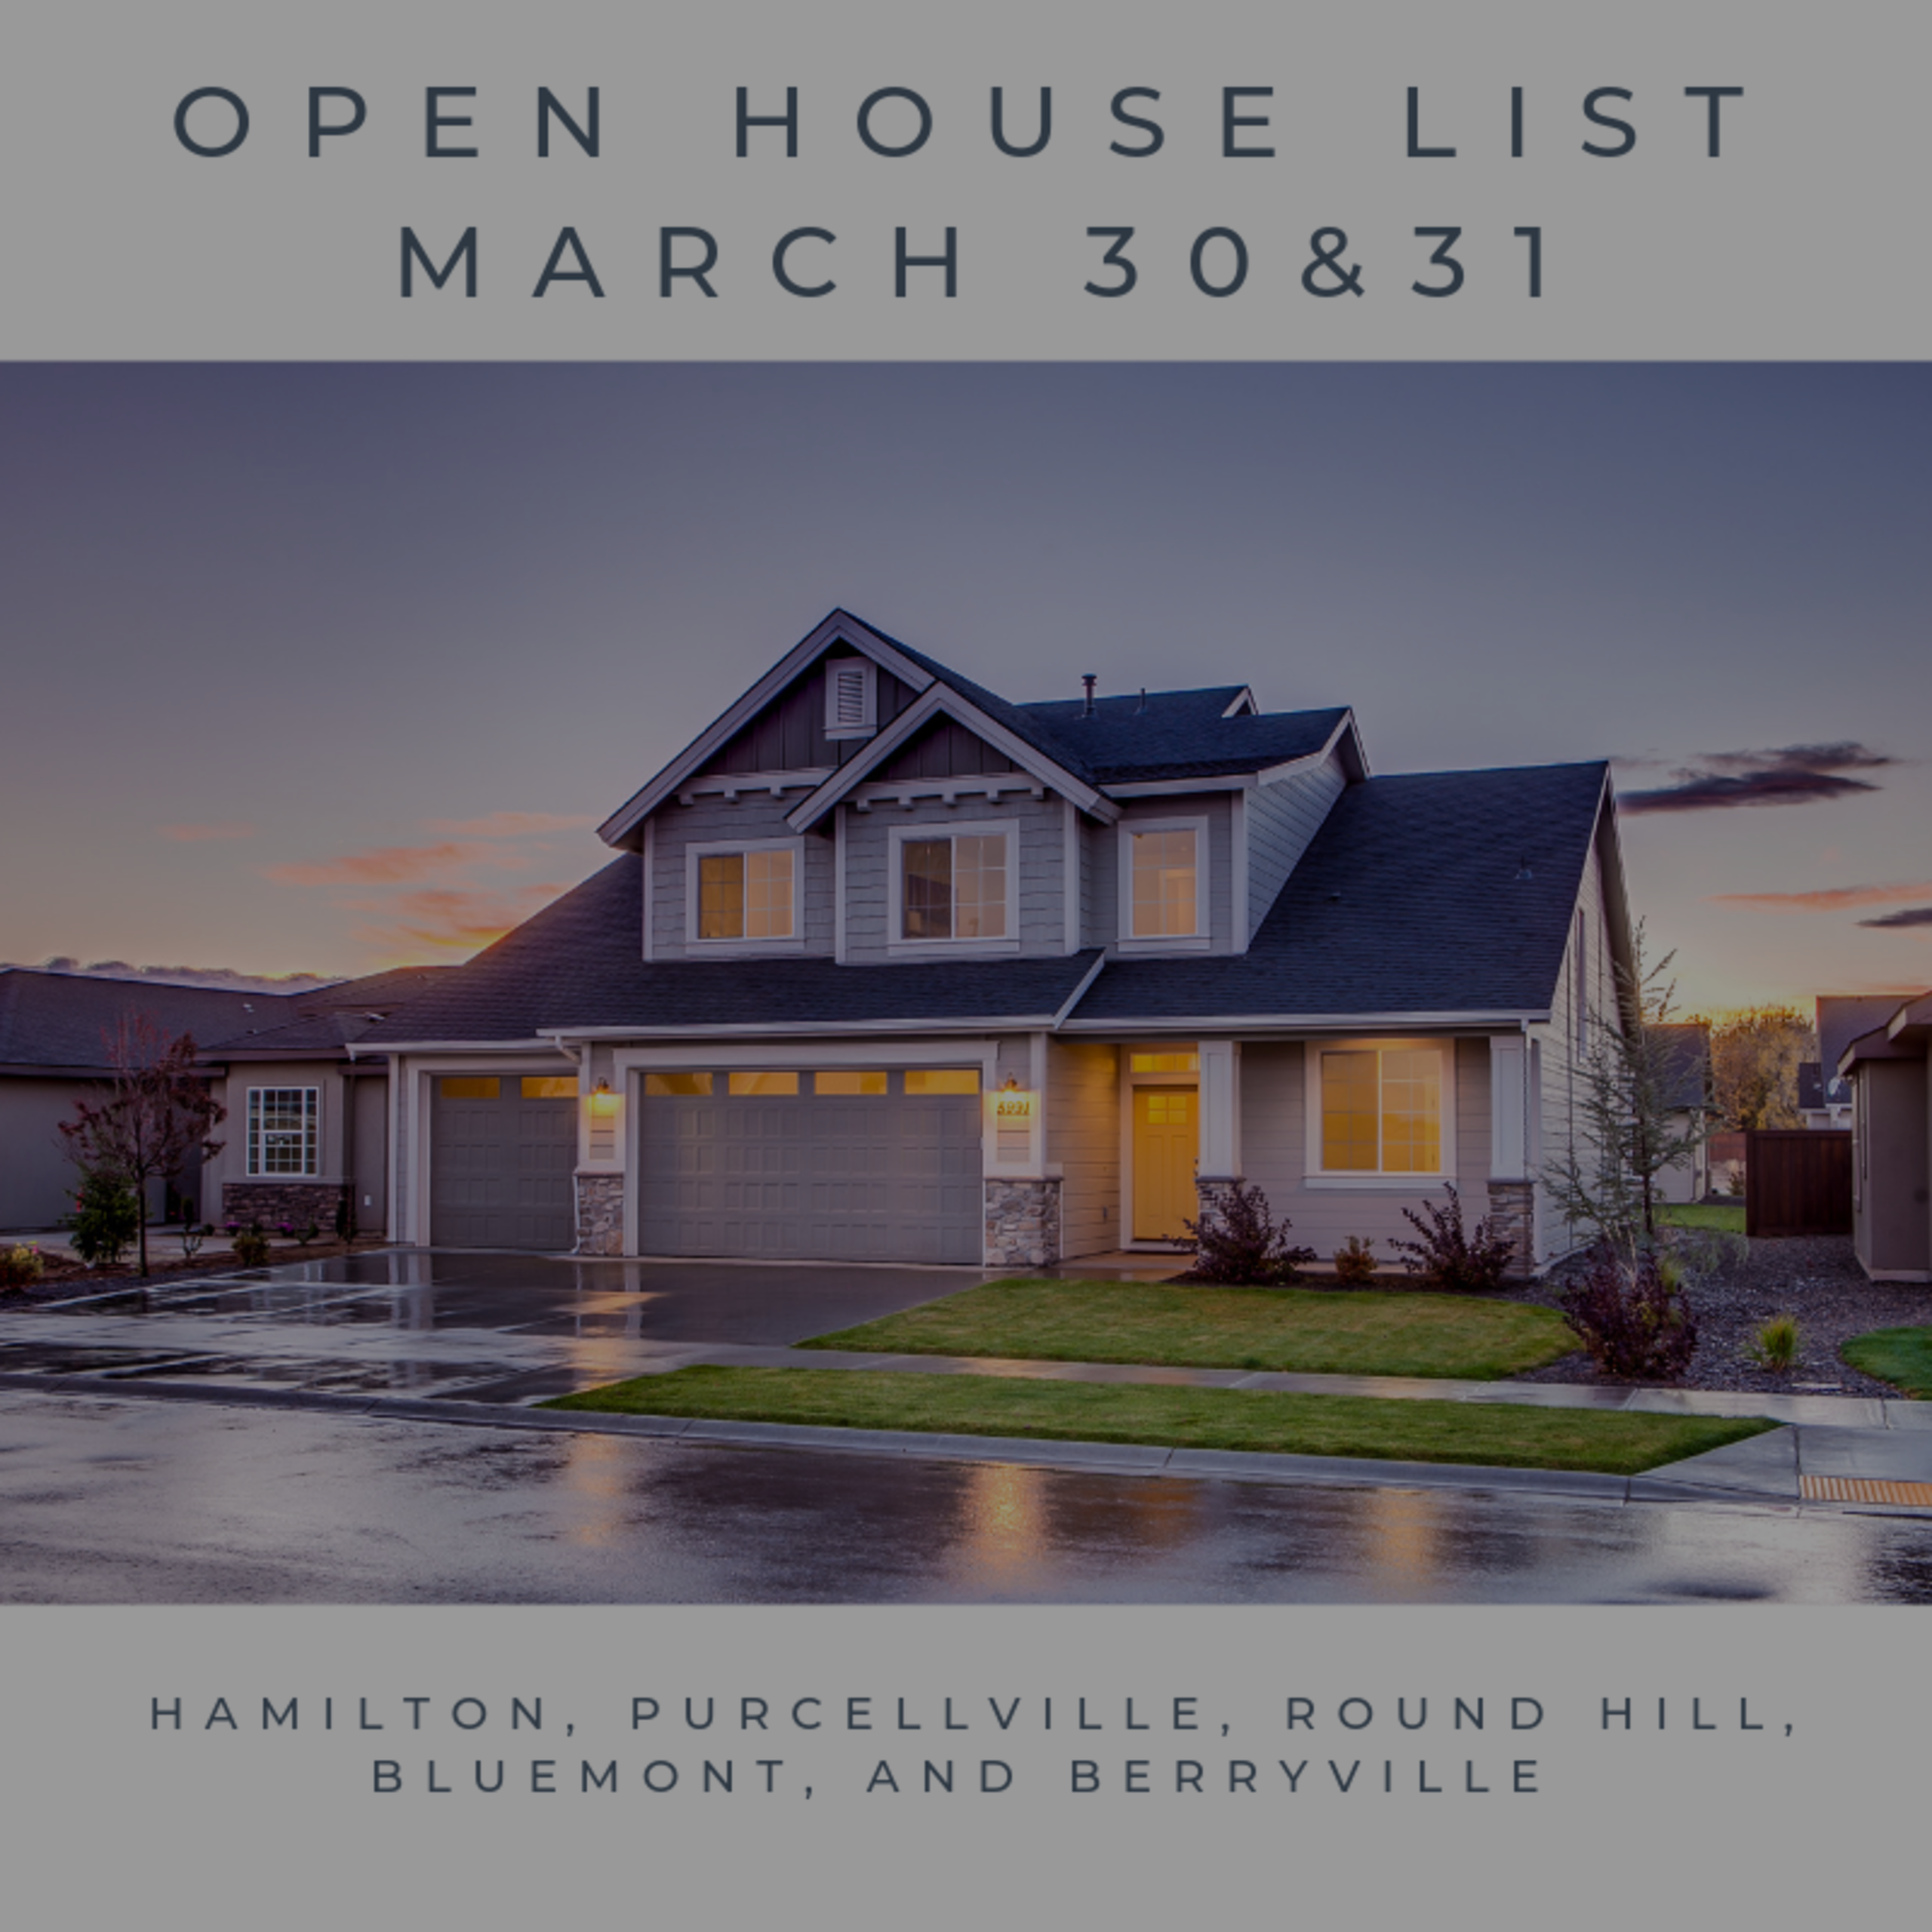 Open House List 3/30/19 – 3/31/19